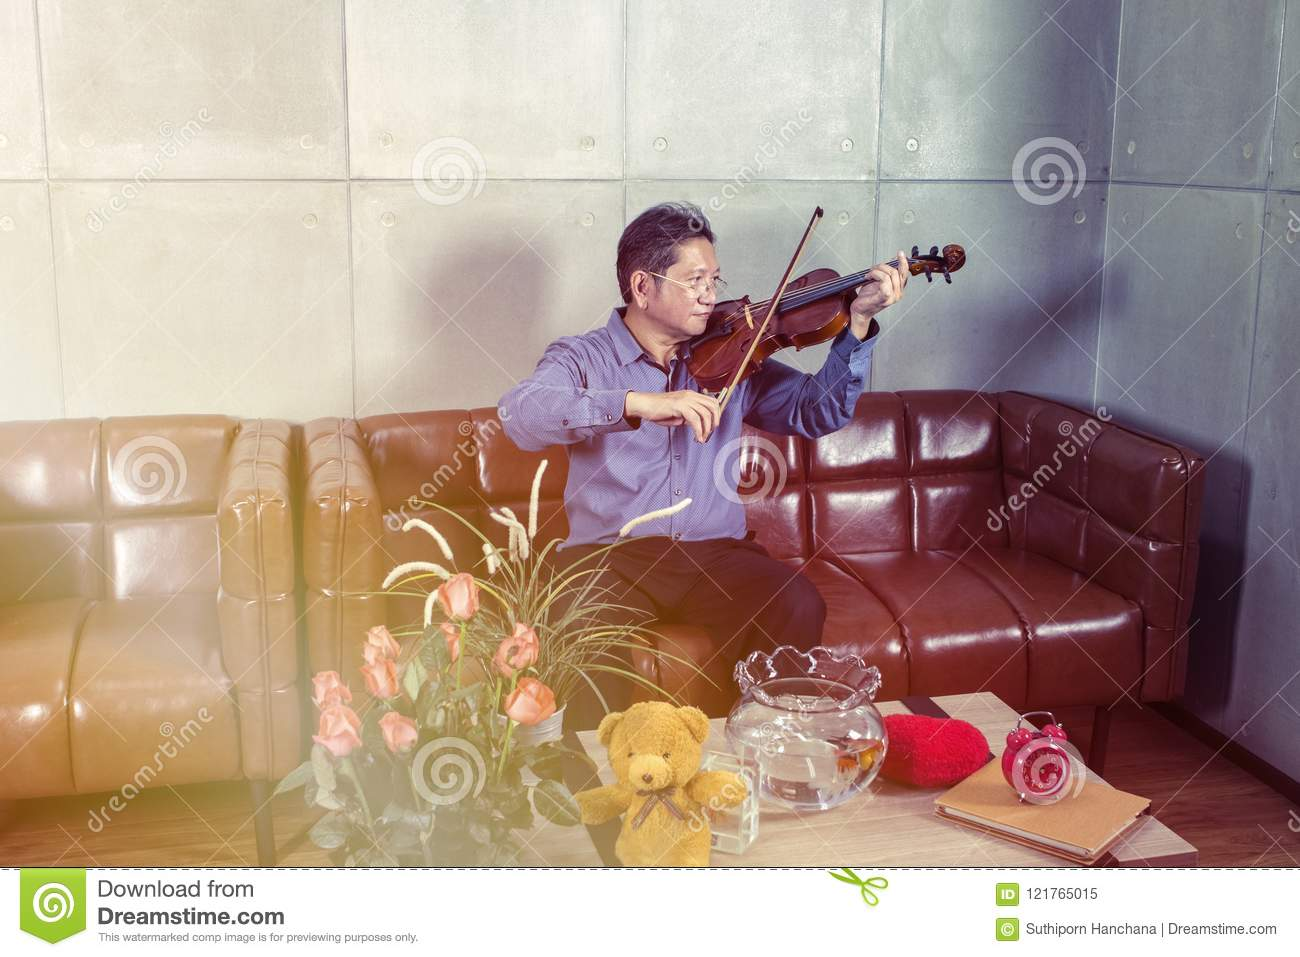 Musician playing violin in living room relax time.